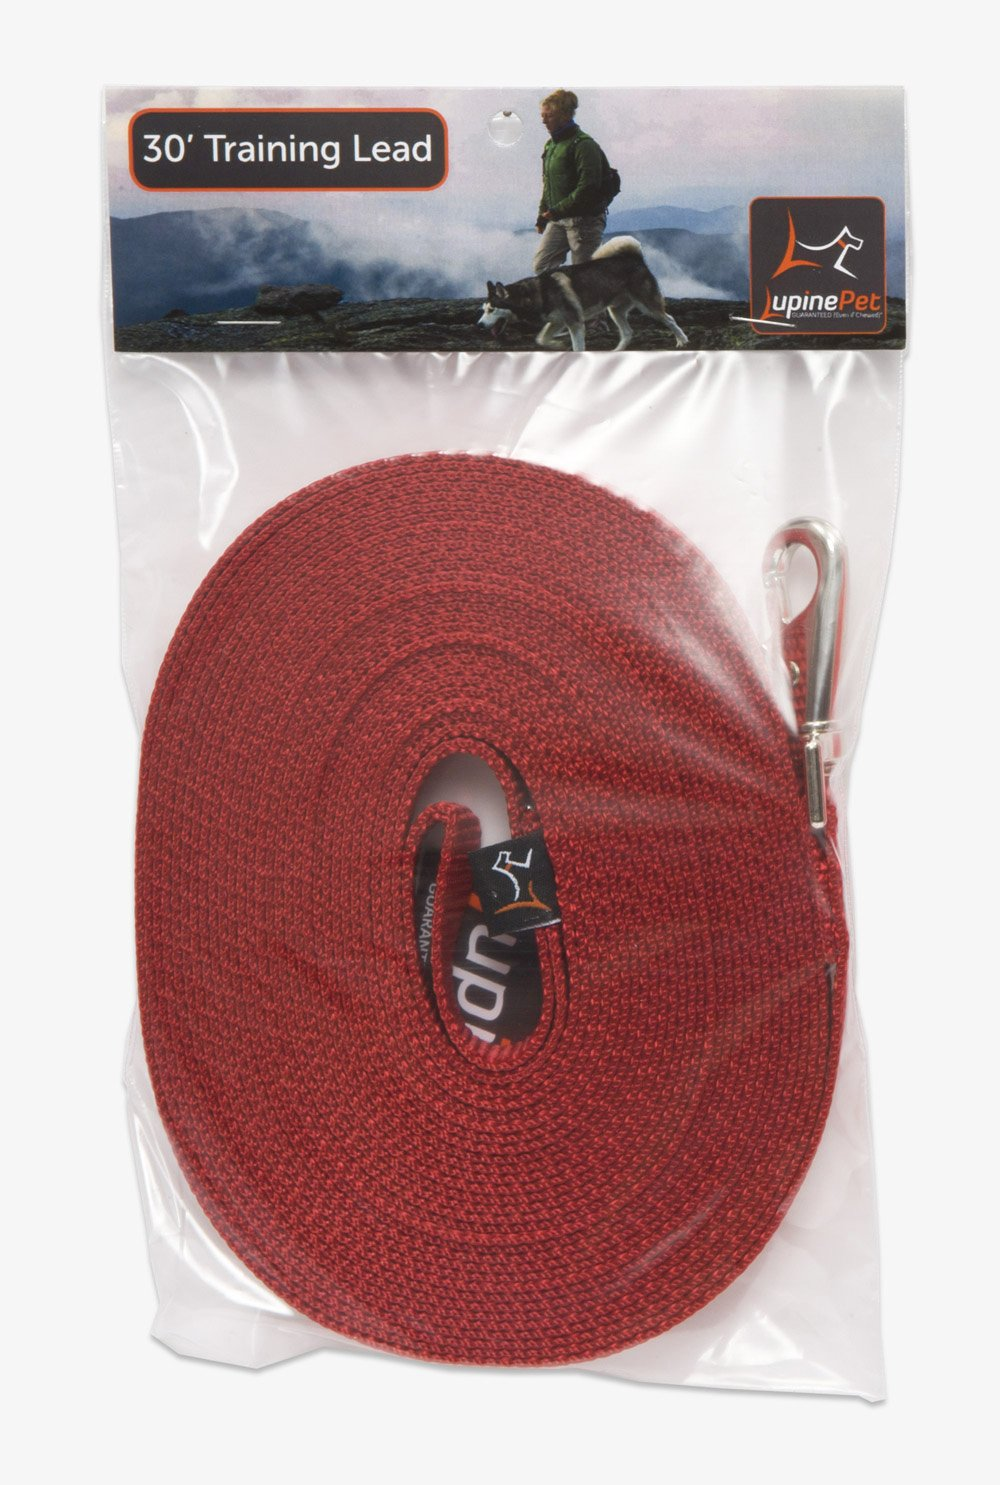 LupinePet Basics 3/4'' Red 30-foot Extra-Long Training Lead/Leash for Medium and Larger Dogs